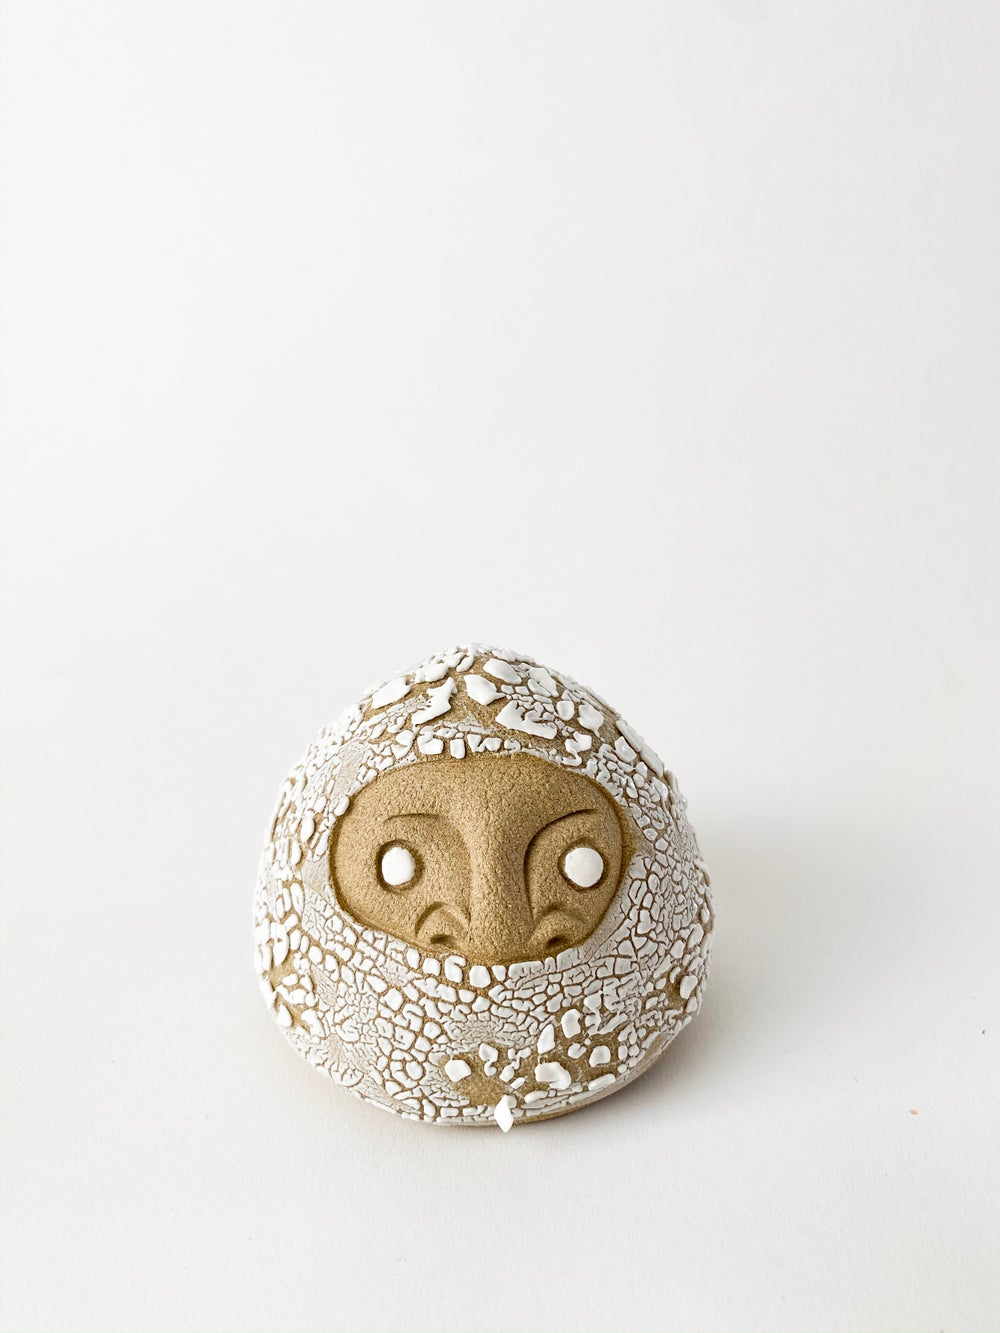 Image of Daruma Wishing Doll - Large White Crawl